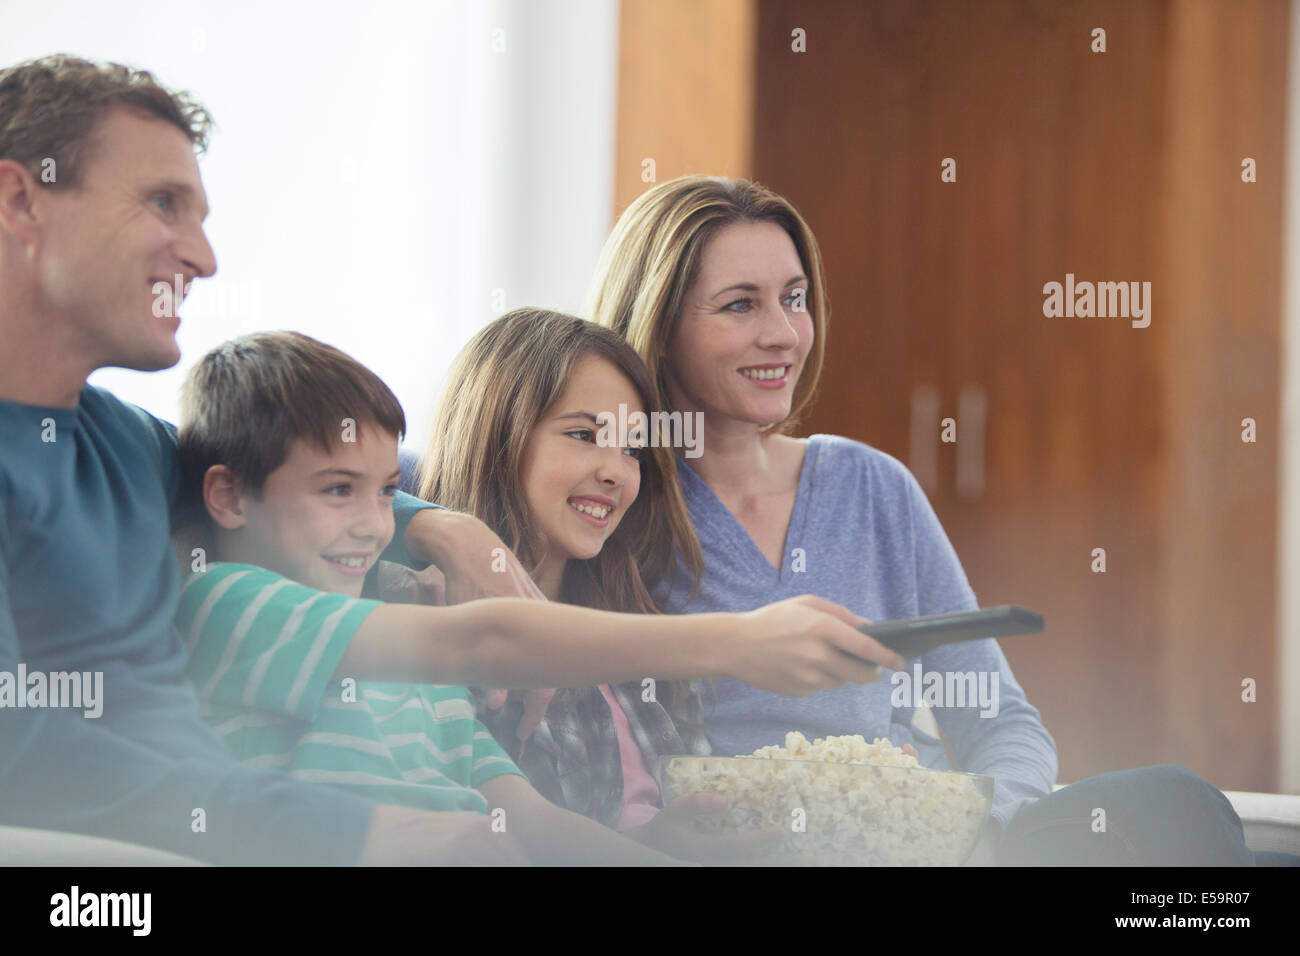 Family watching television in living room - Stock Image